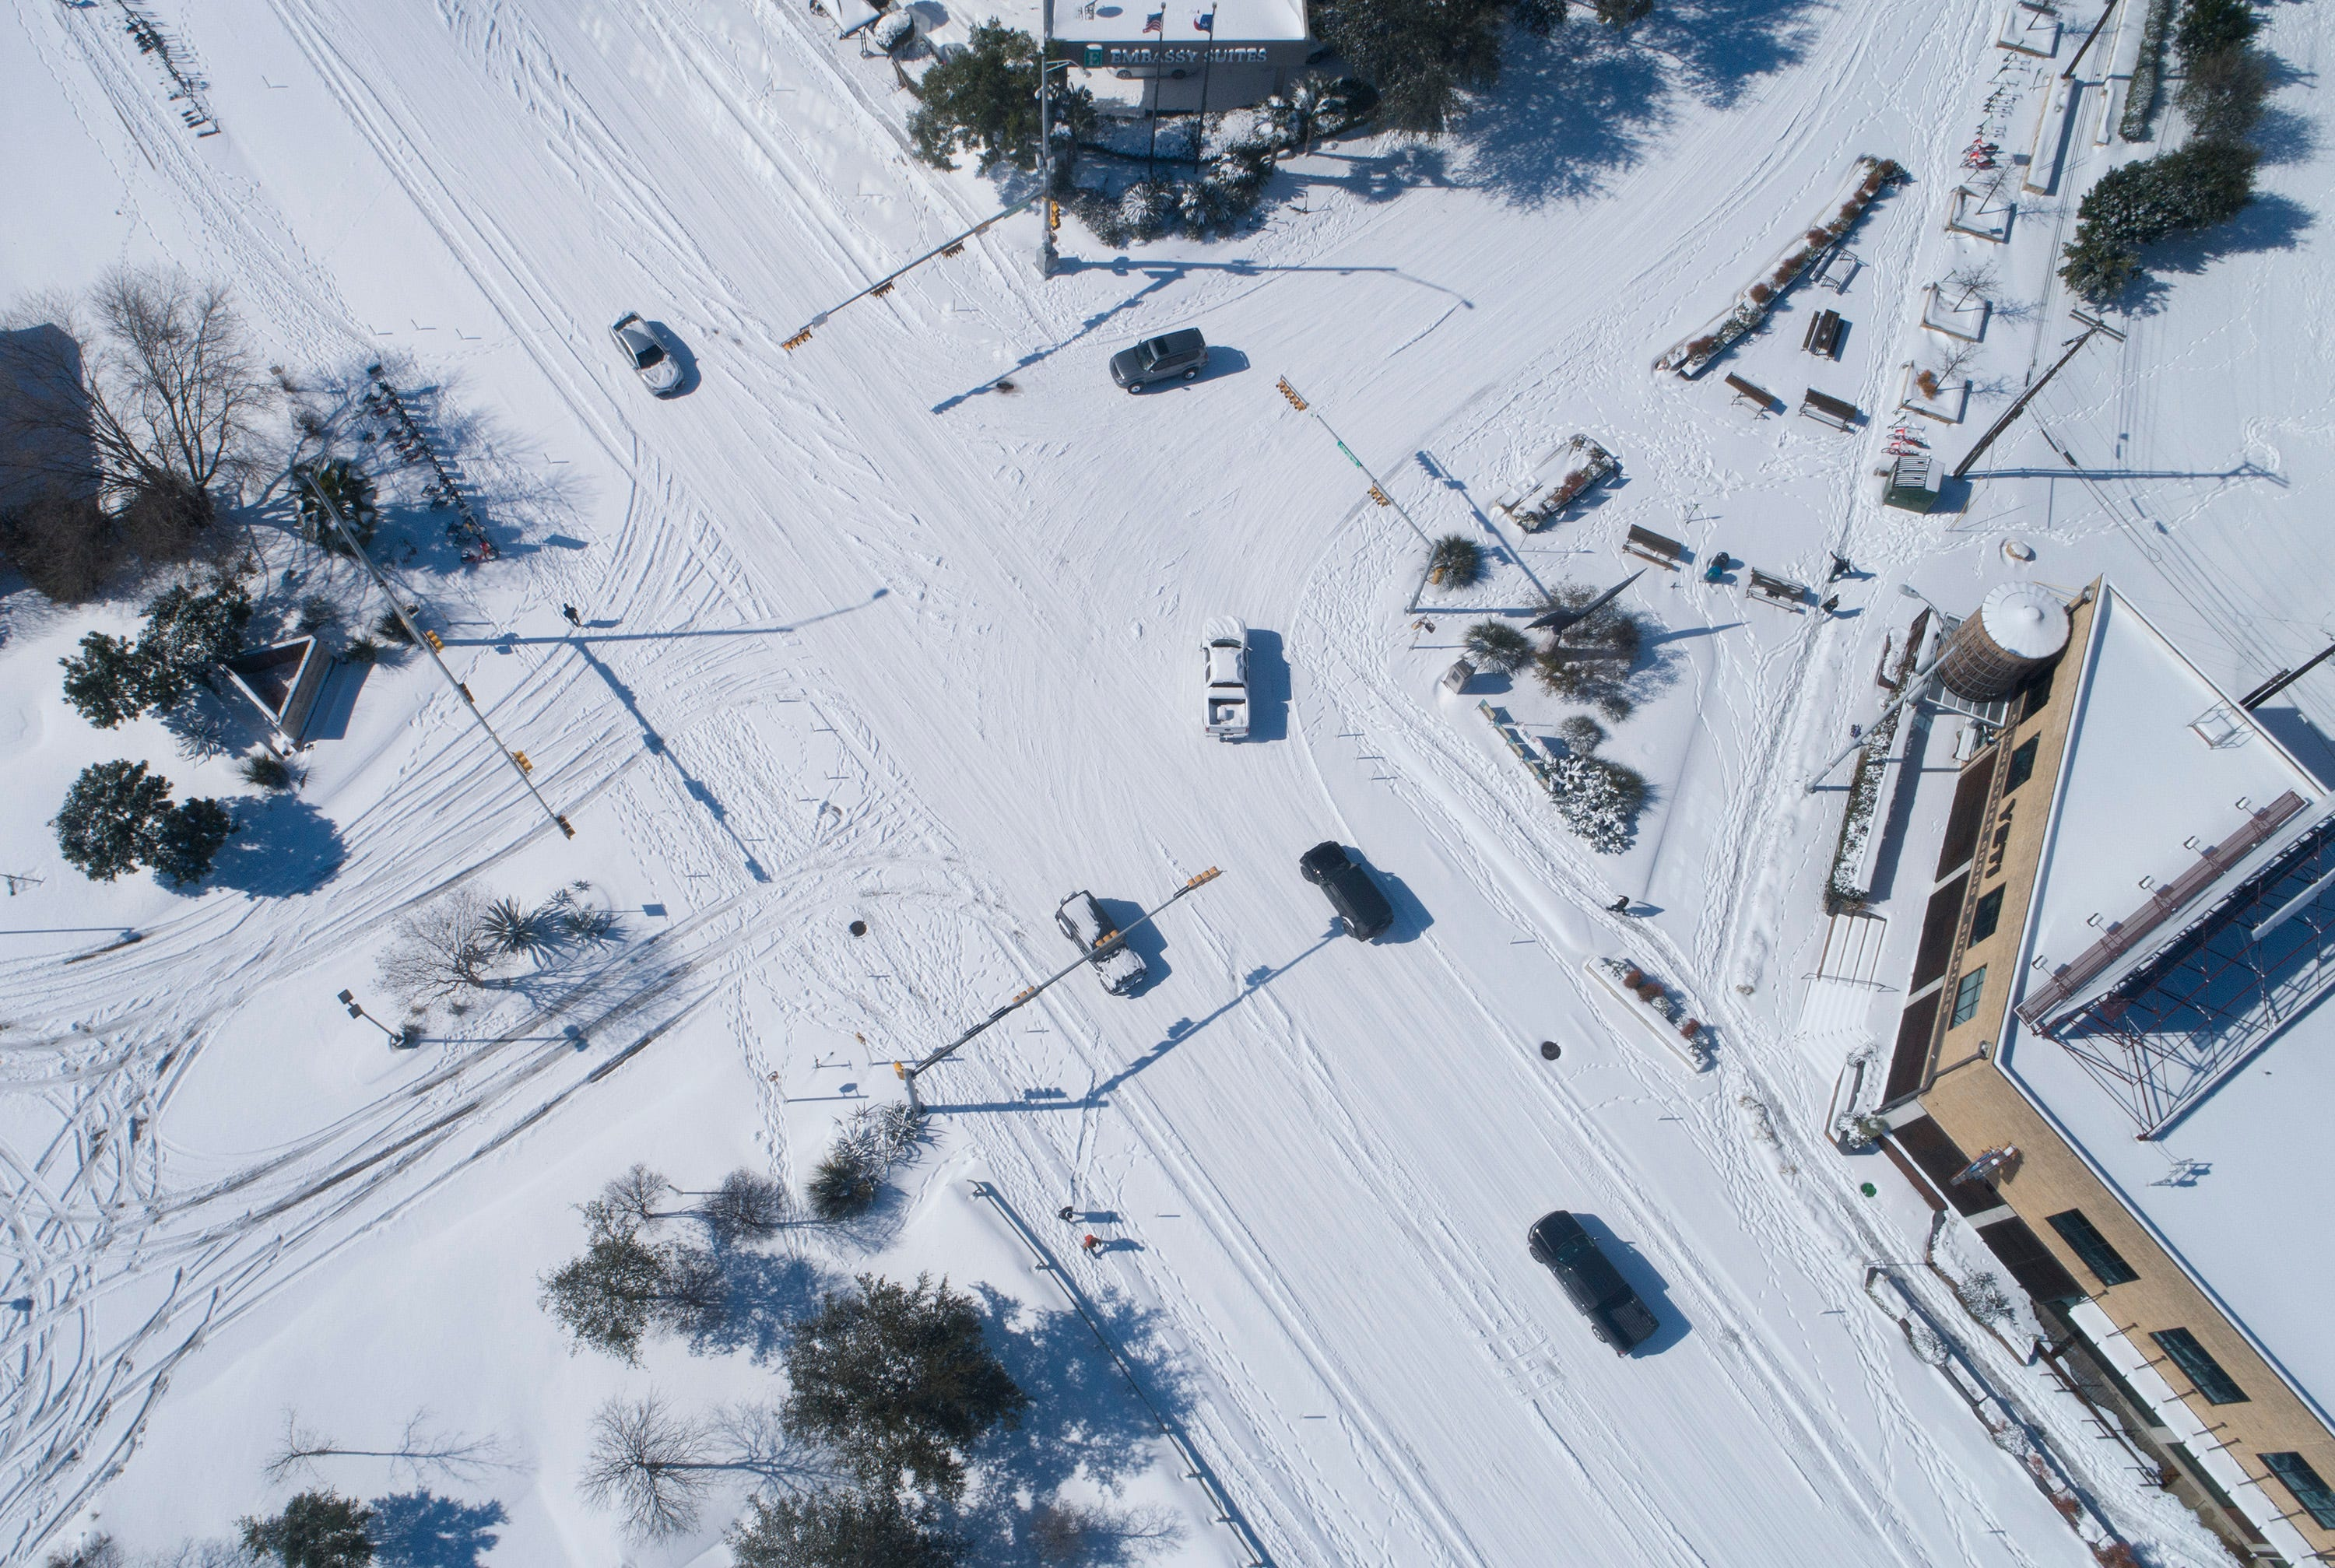 An overhead view of a cars driving through a snowy intersection.